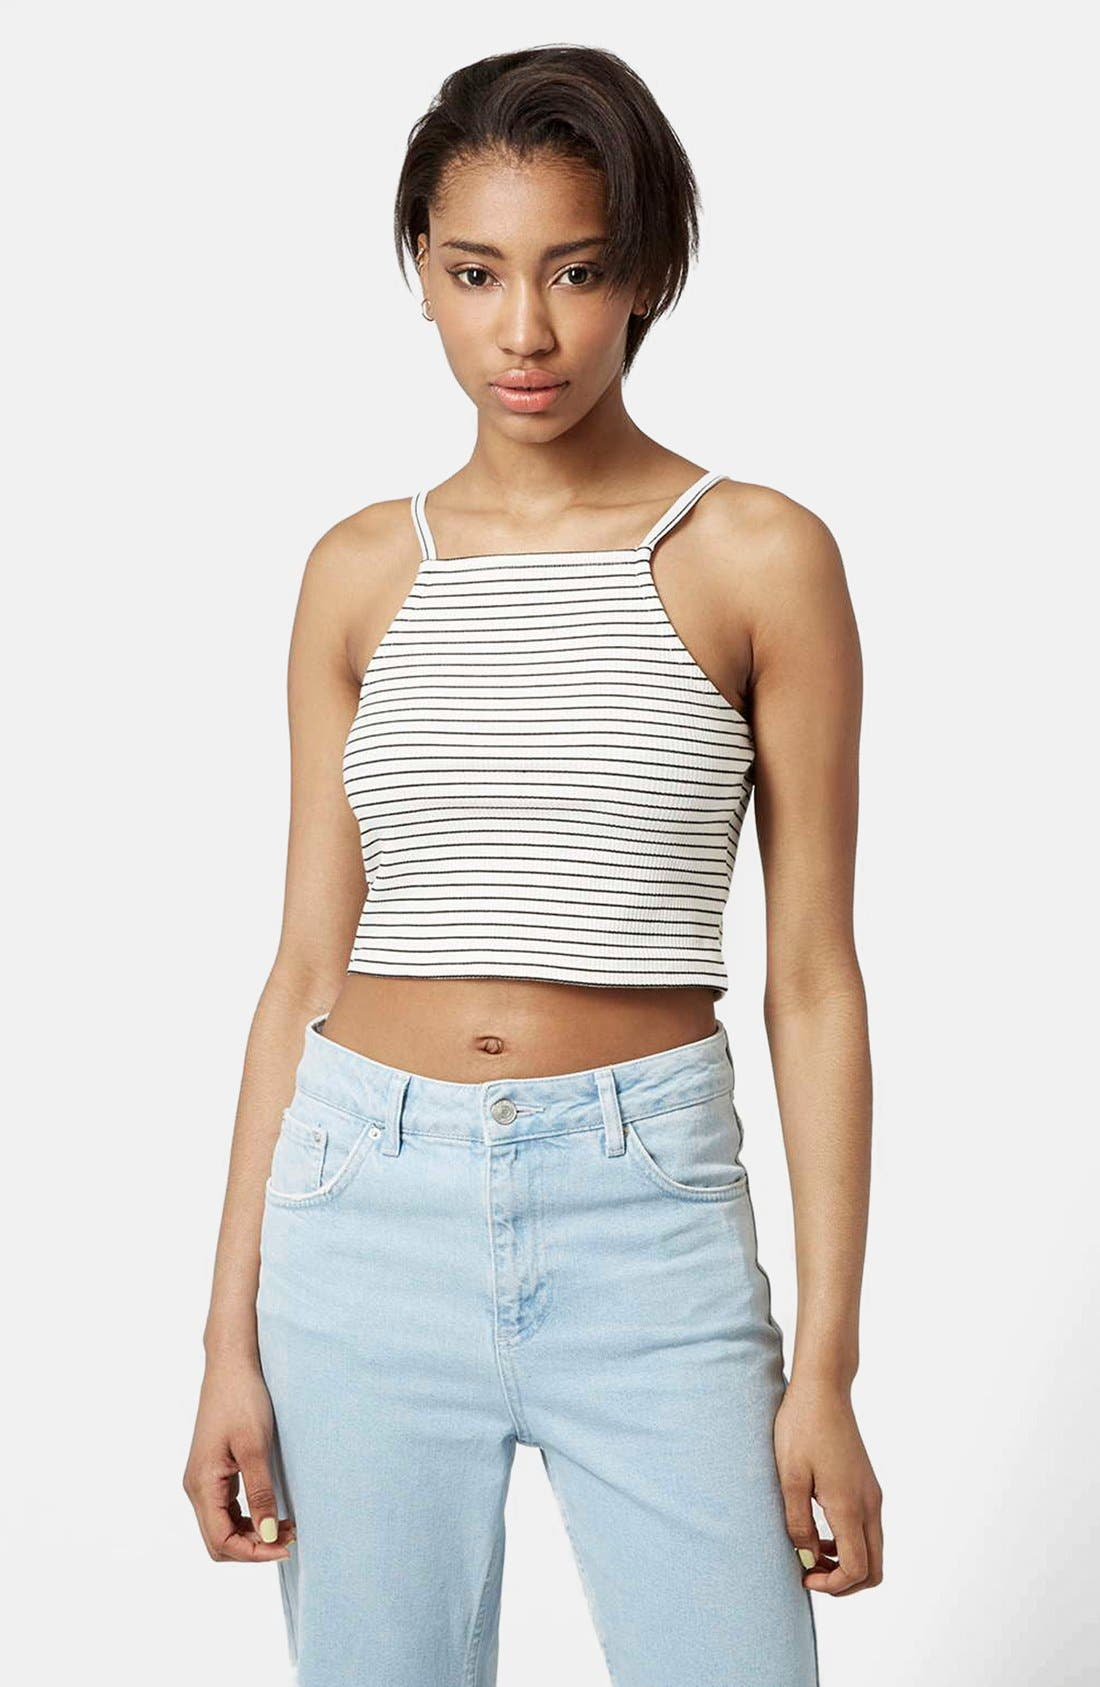 Alternate Image 1 Selected - Topshop Square Neck Stripe Crop Top (Petite)